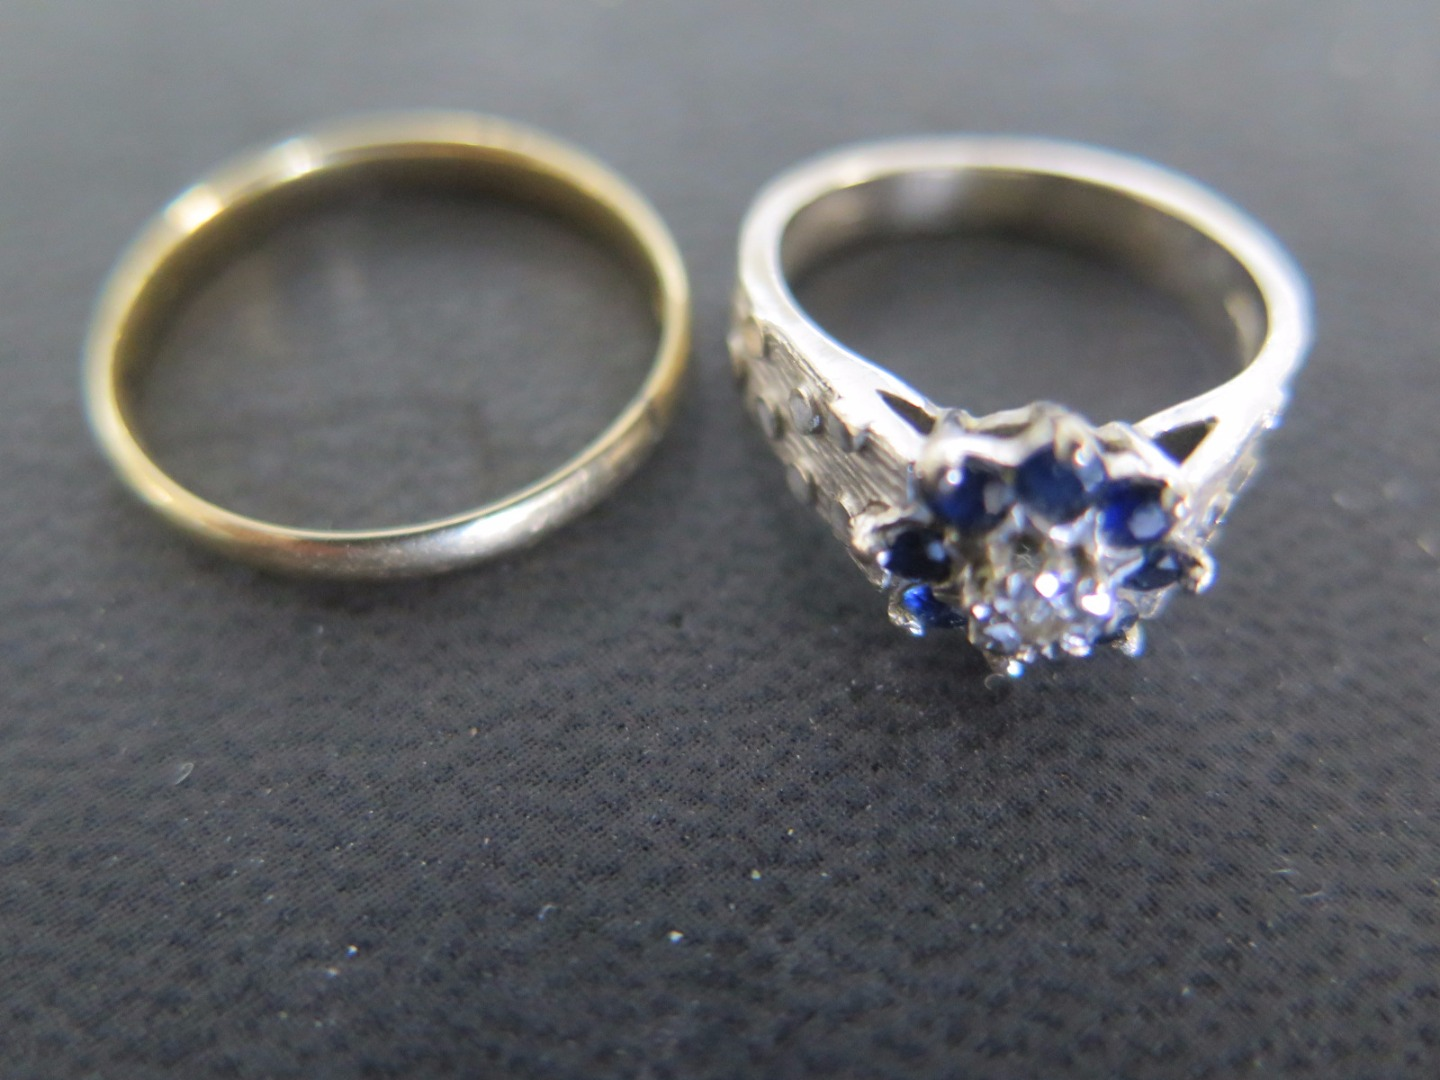 An 18ct yellow gold wedding band size O and an 18ct white gold cluster ring...